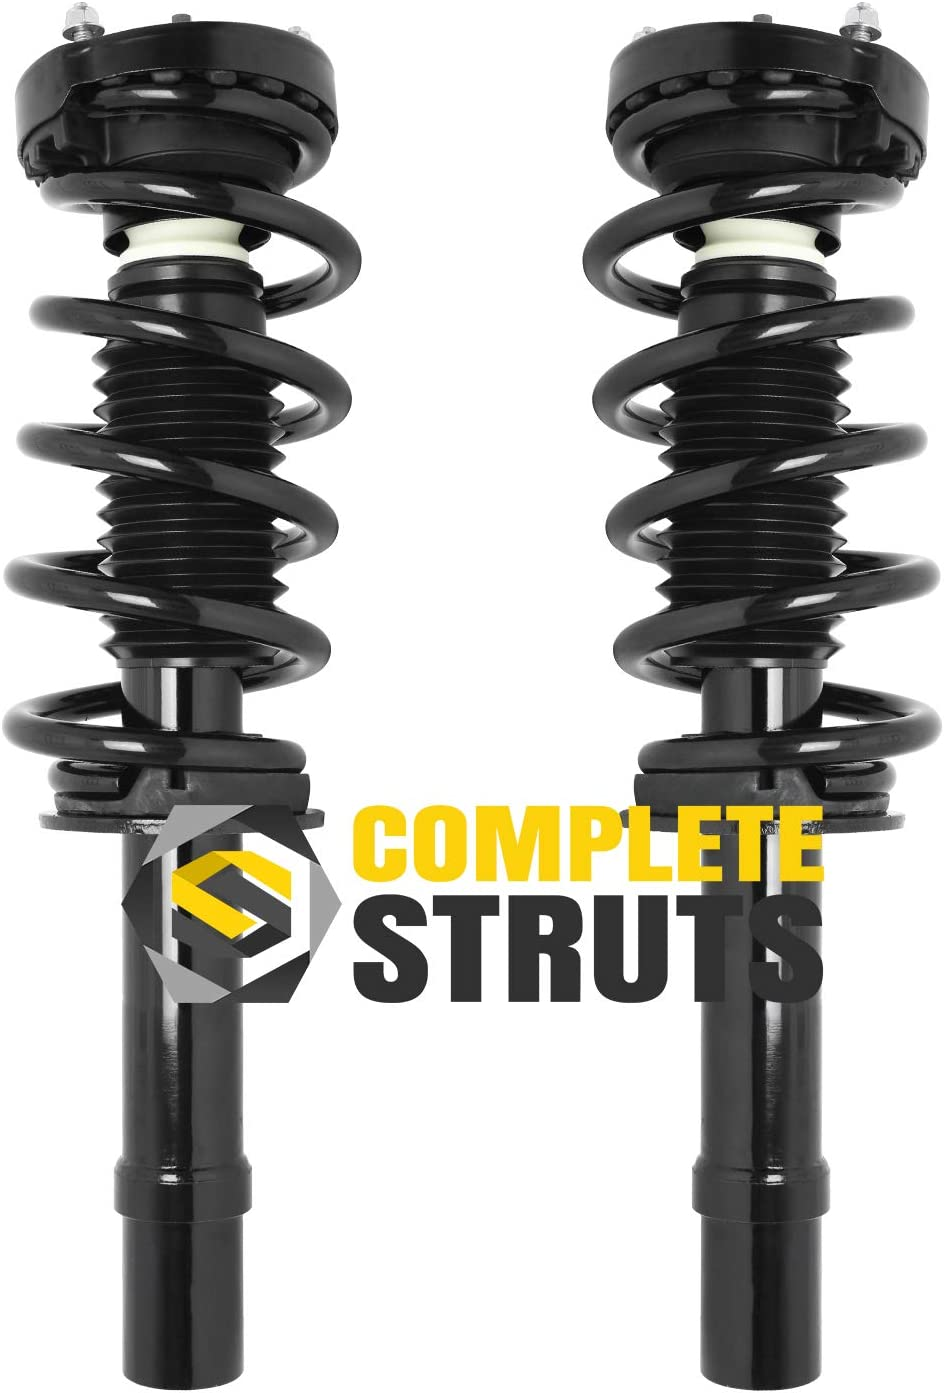 Front Quick Complete Struts /& Coil Spring Assemblies Compatible with 2012-2017 Dodge Charger V6 AWD Pair